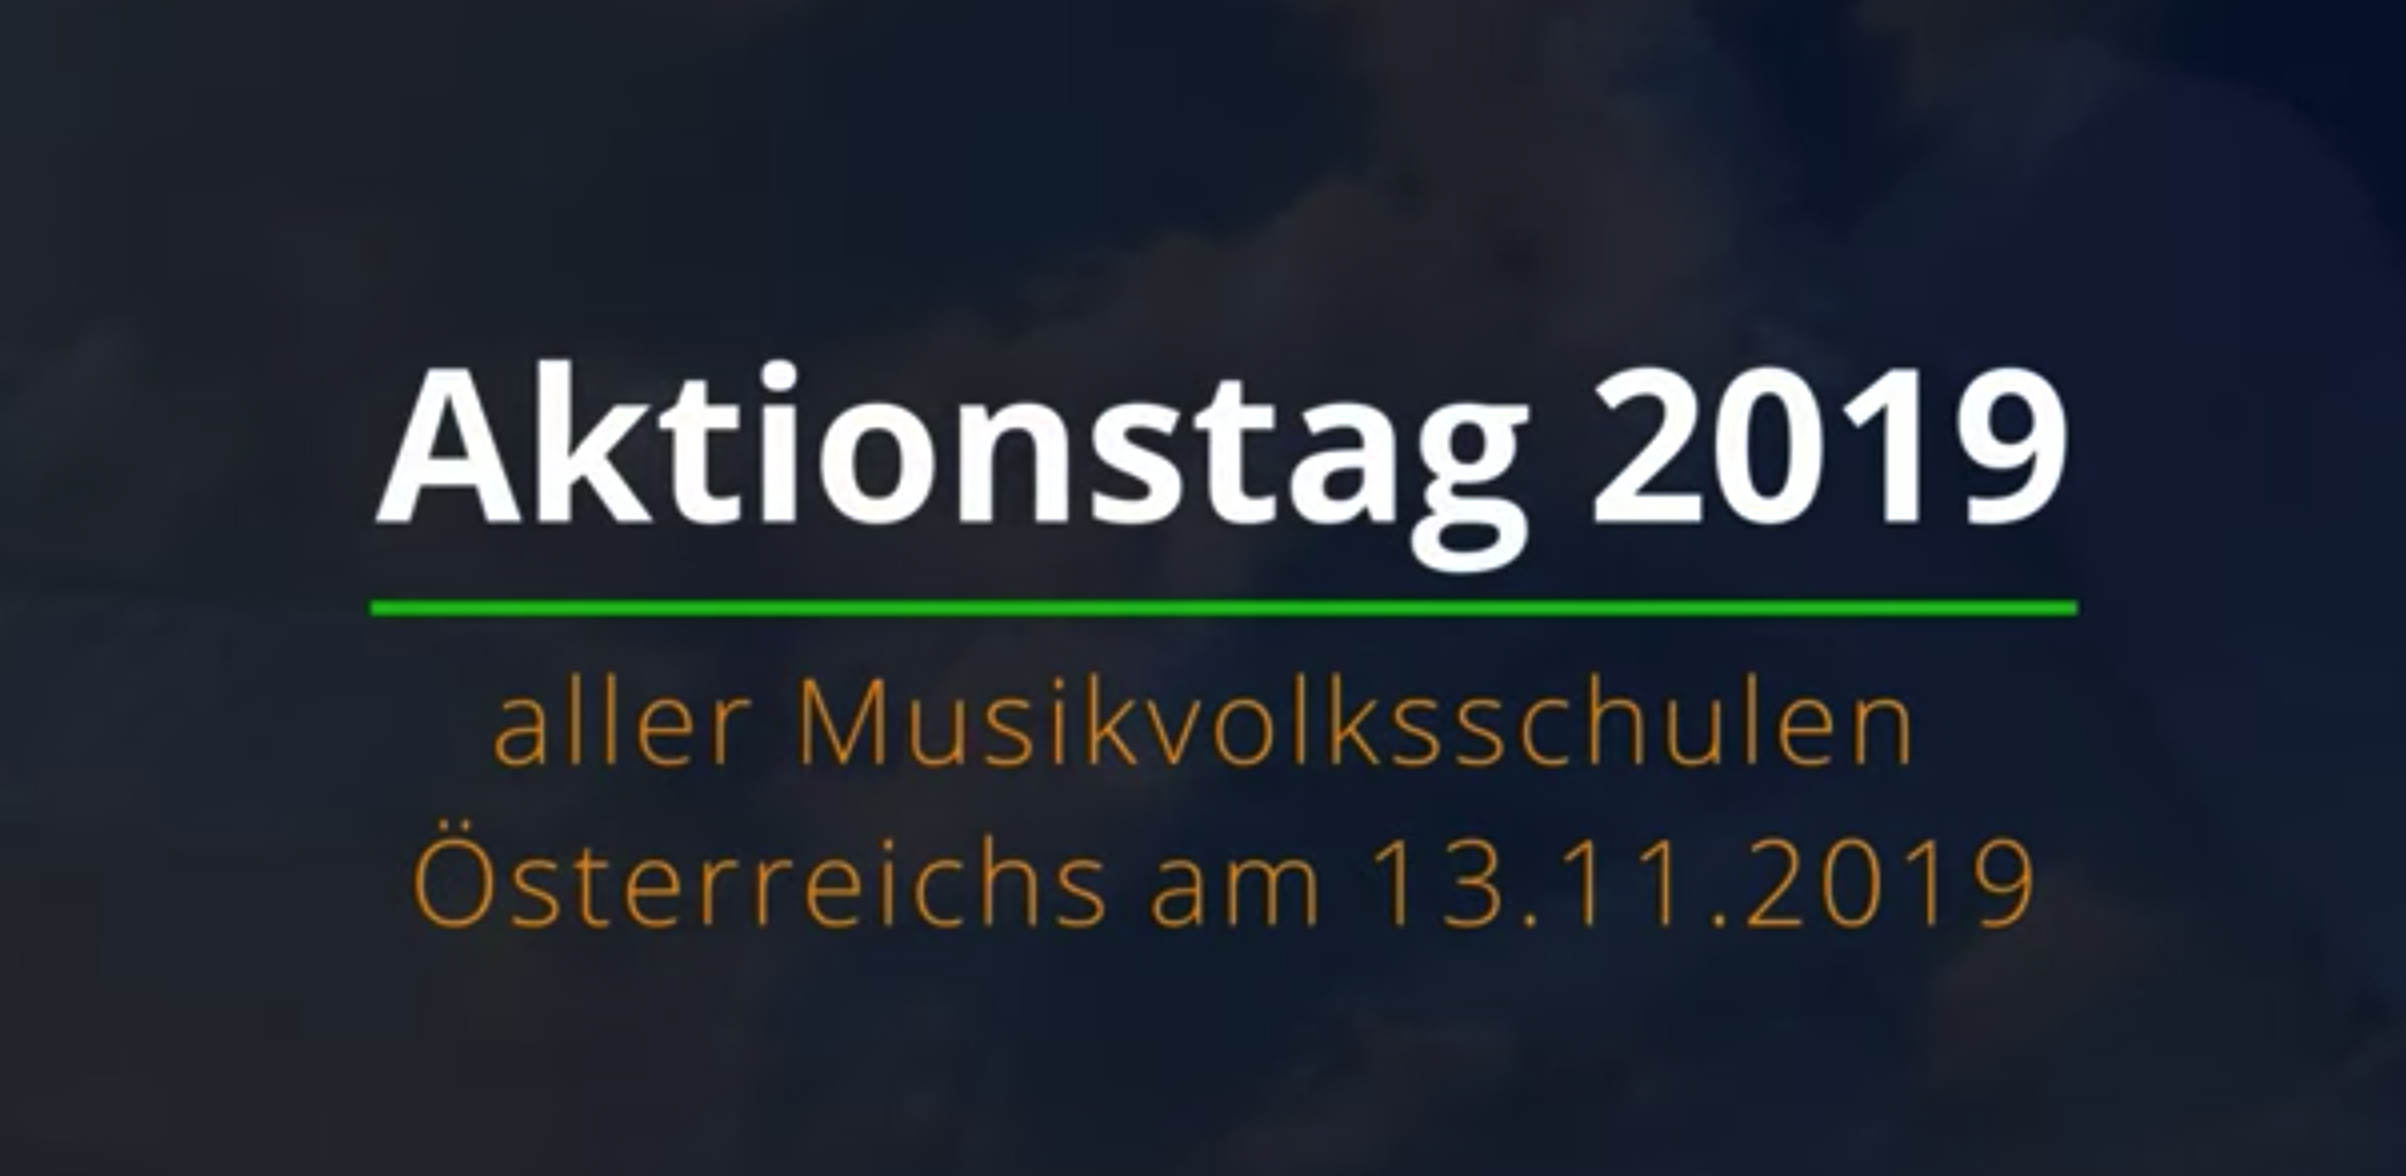 Video Aktionstag der Musikvolksschulen 2019